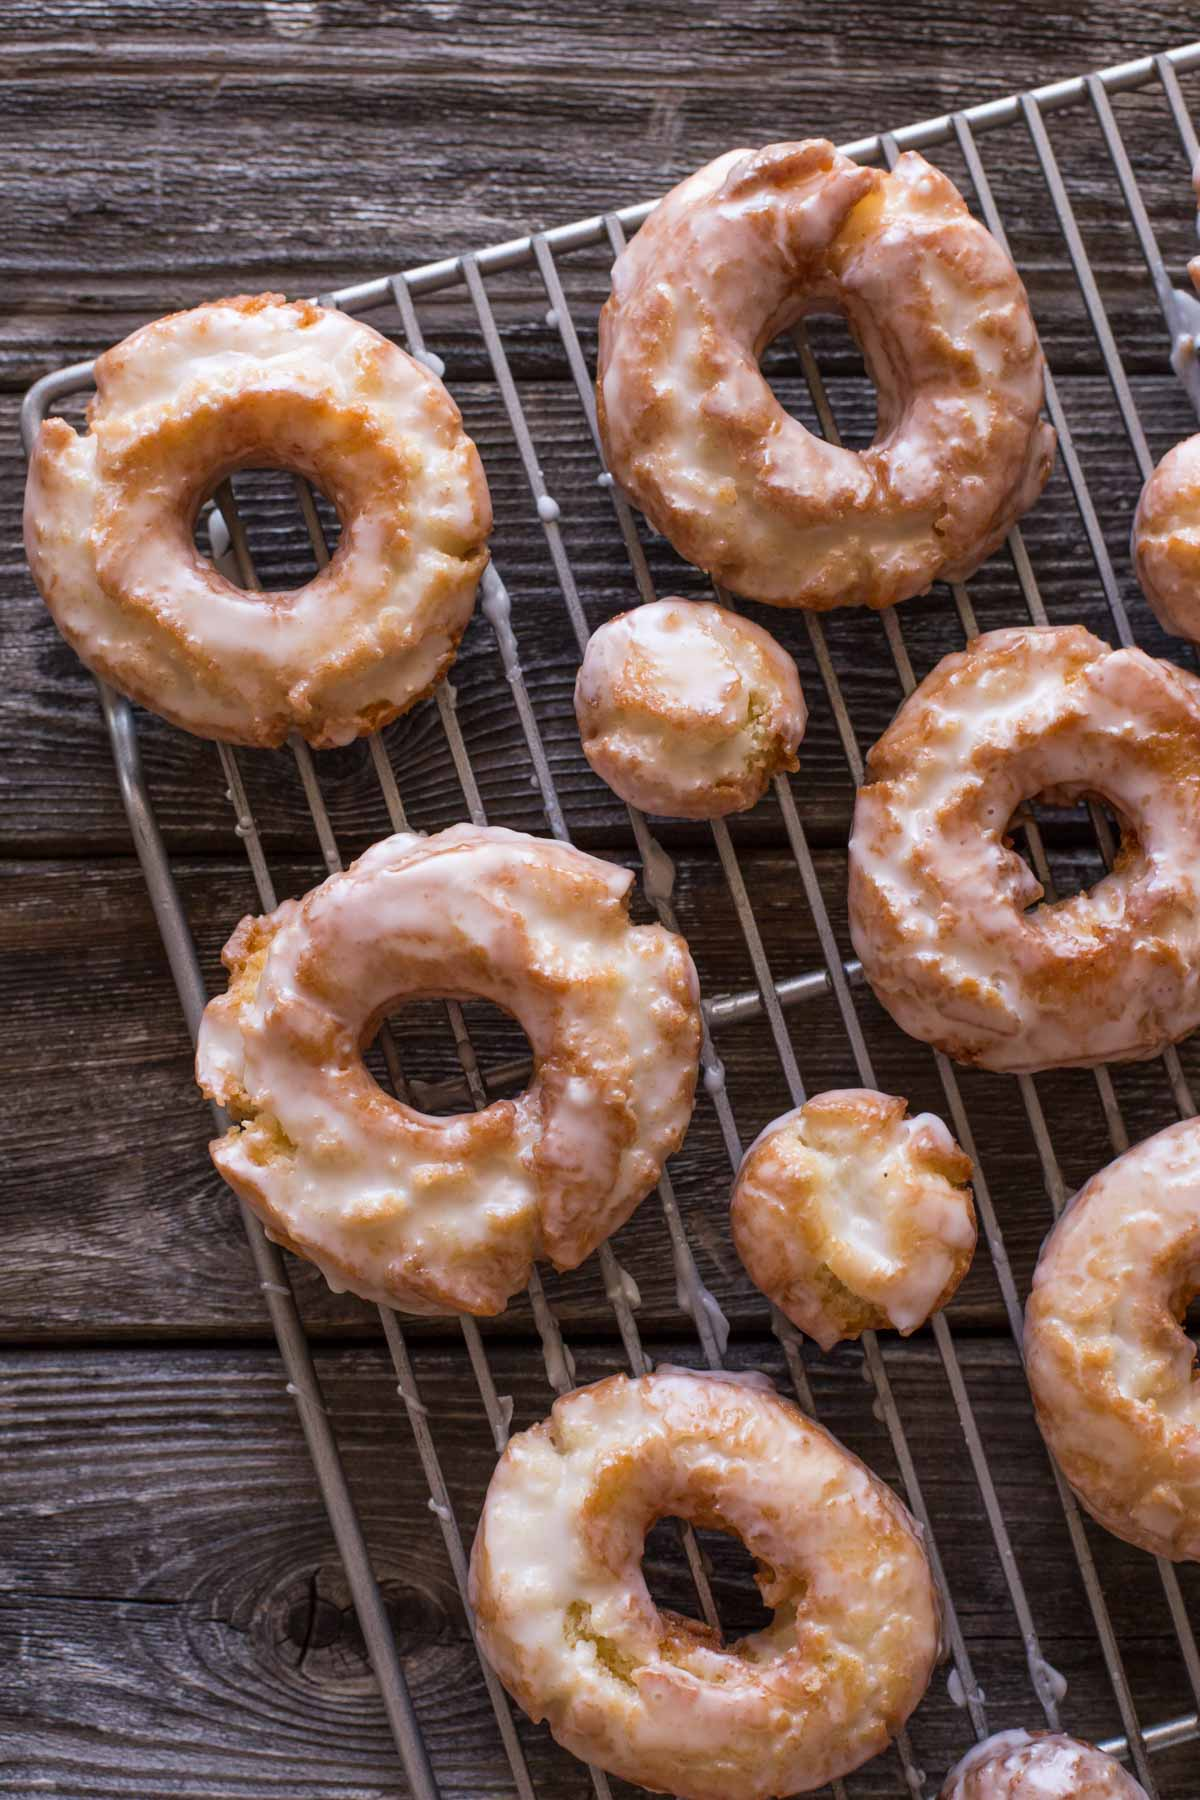 Overhead view of Old Fashioned Buttermilk Donuts on a cooking rack on a wooden background.